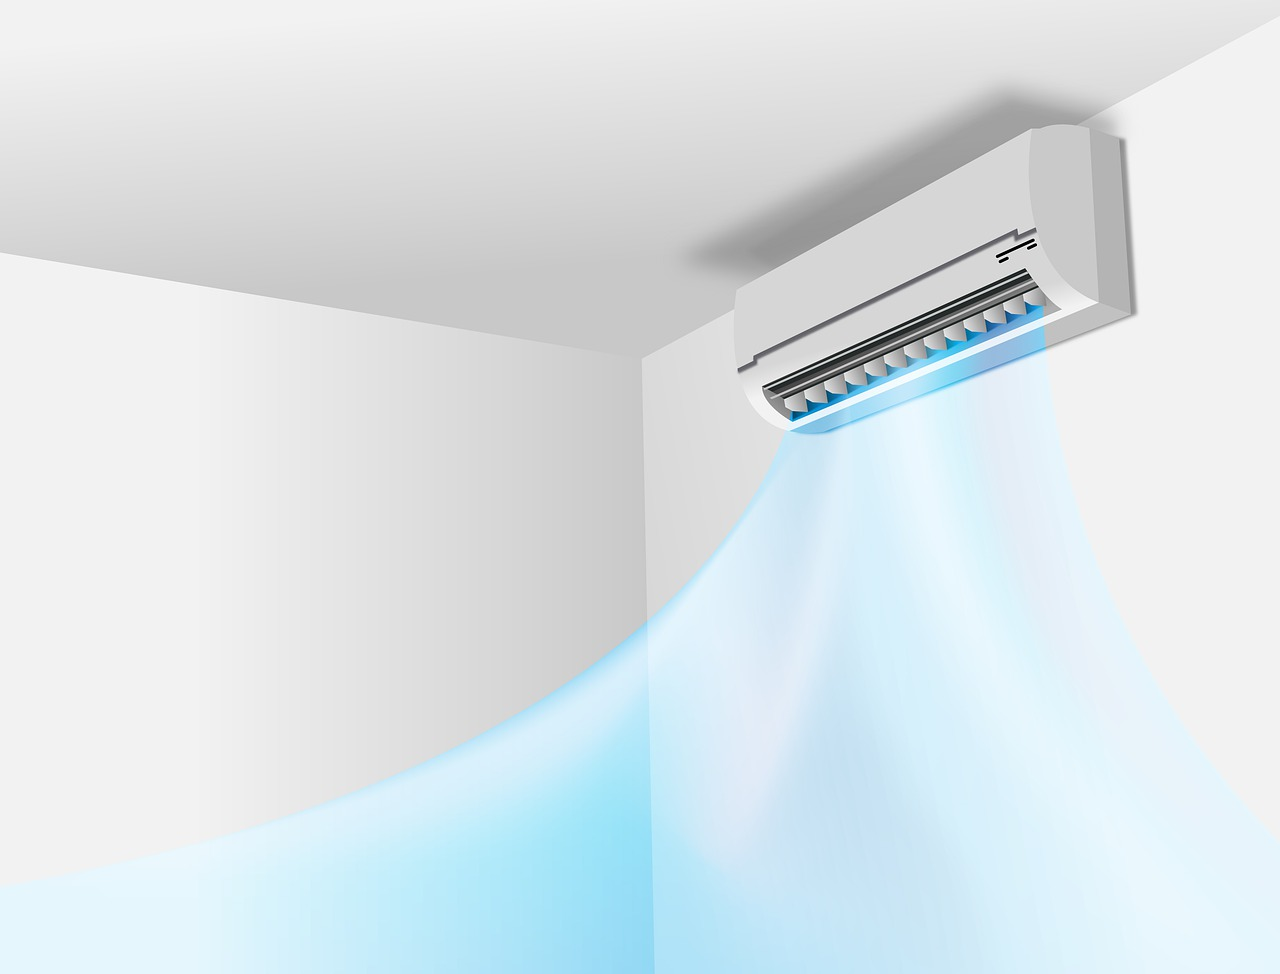 Air Conditioner Ac Cool - Free image on Pixabay